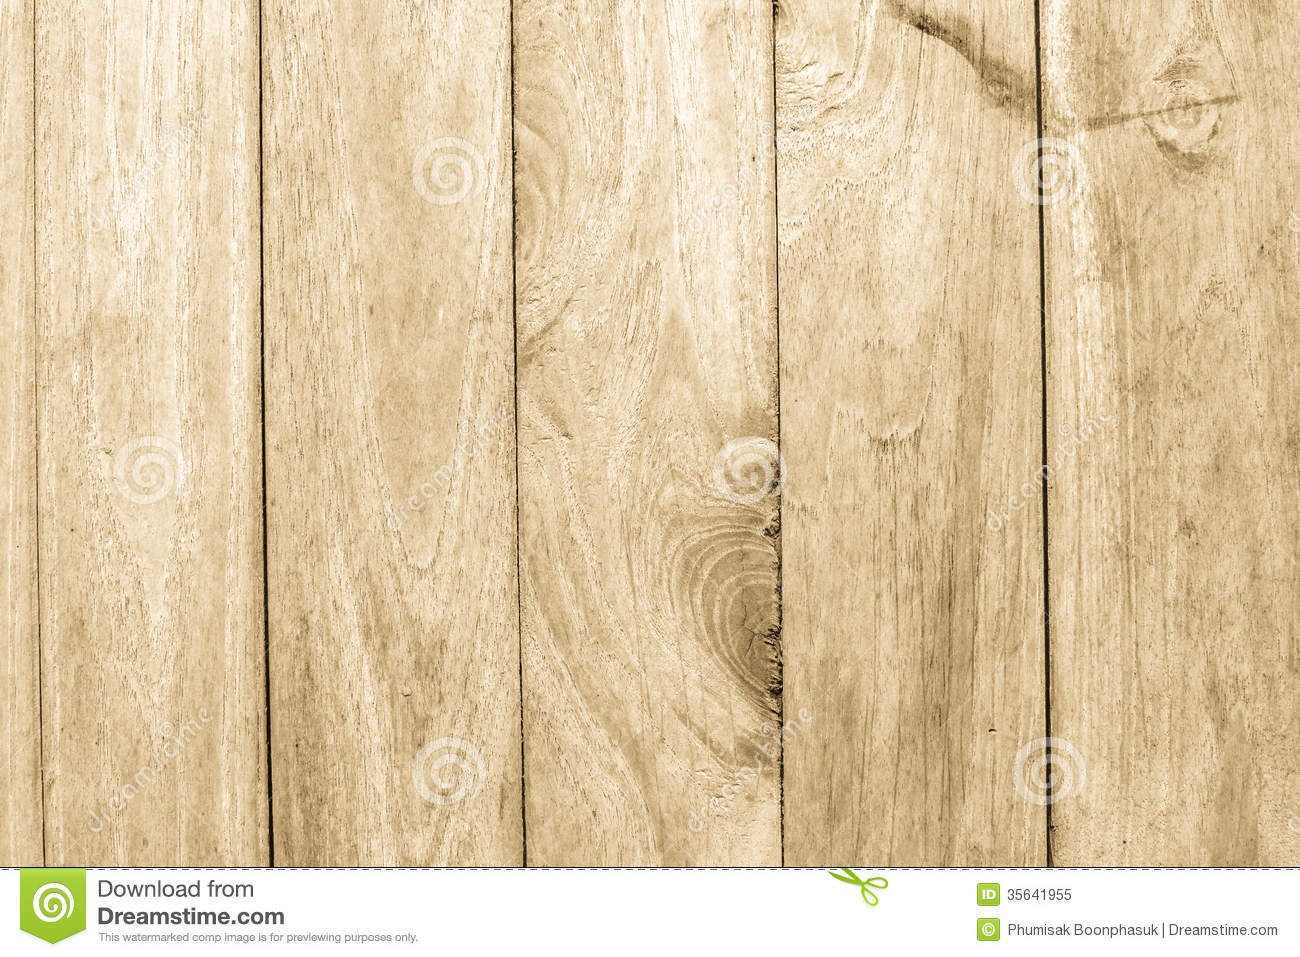 fond en bois de texture de mur de parquet de surface de plancher image stock image du fonc. Black Bedroom Furniture Sets. Home Design Ideas